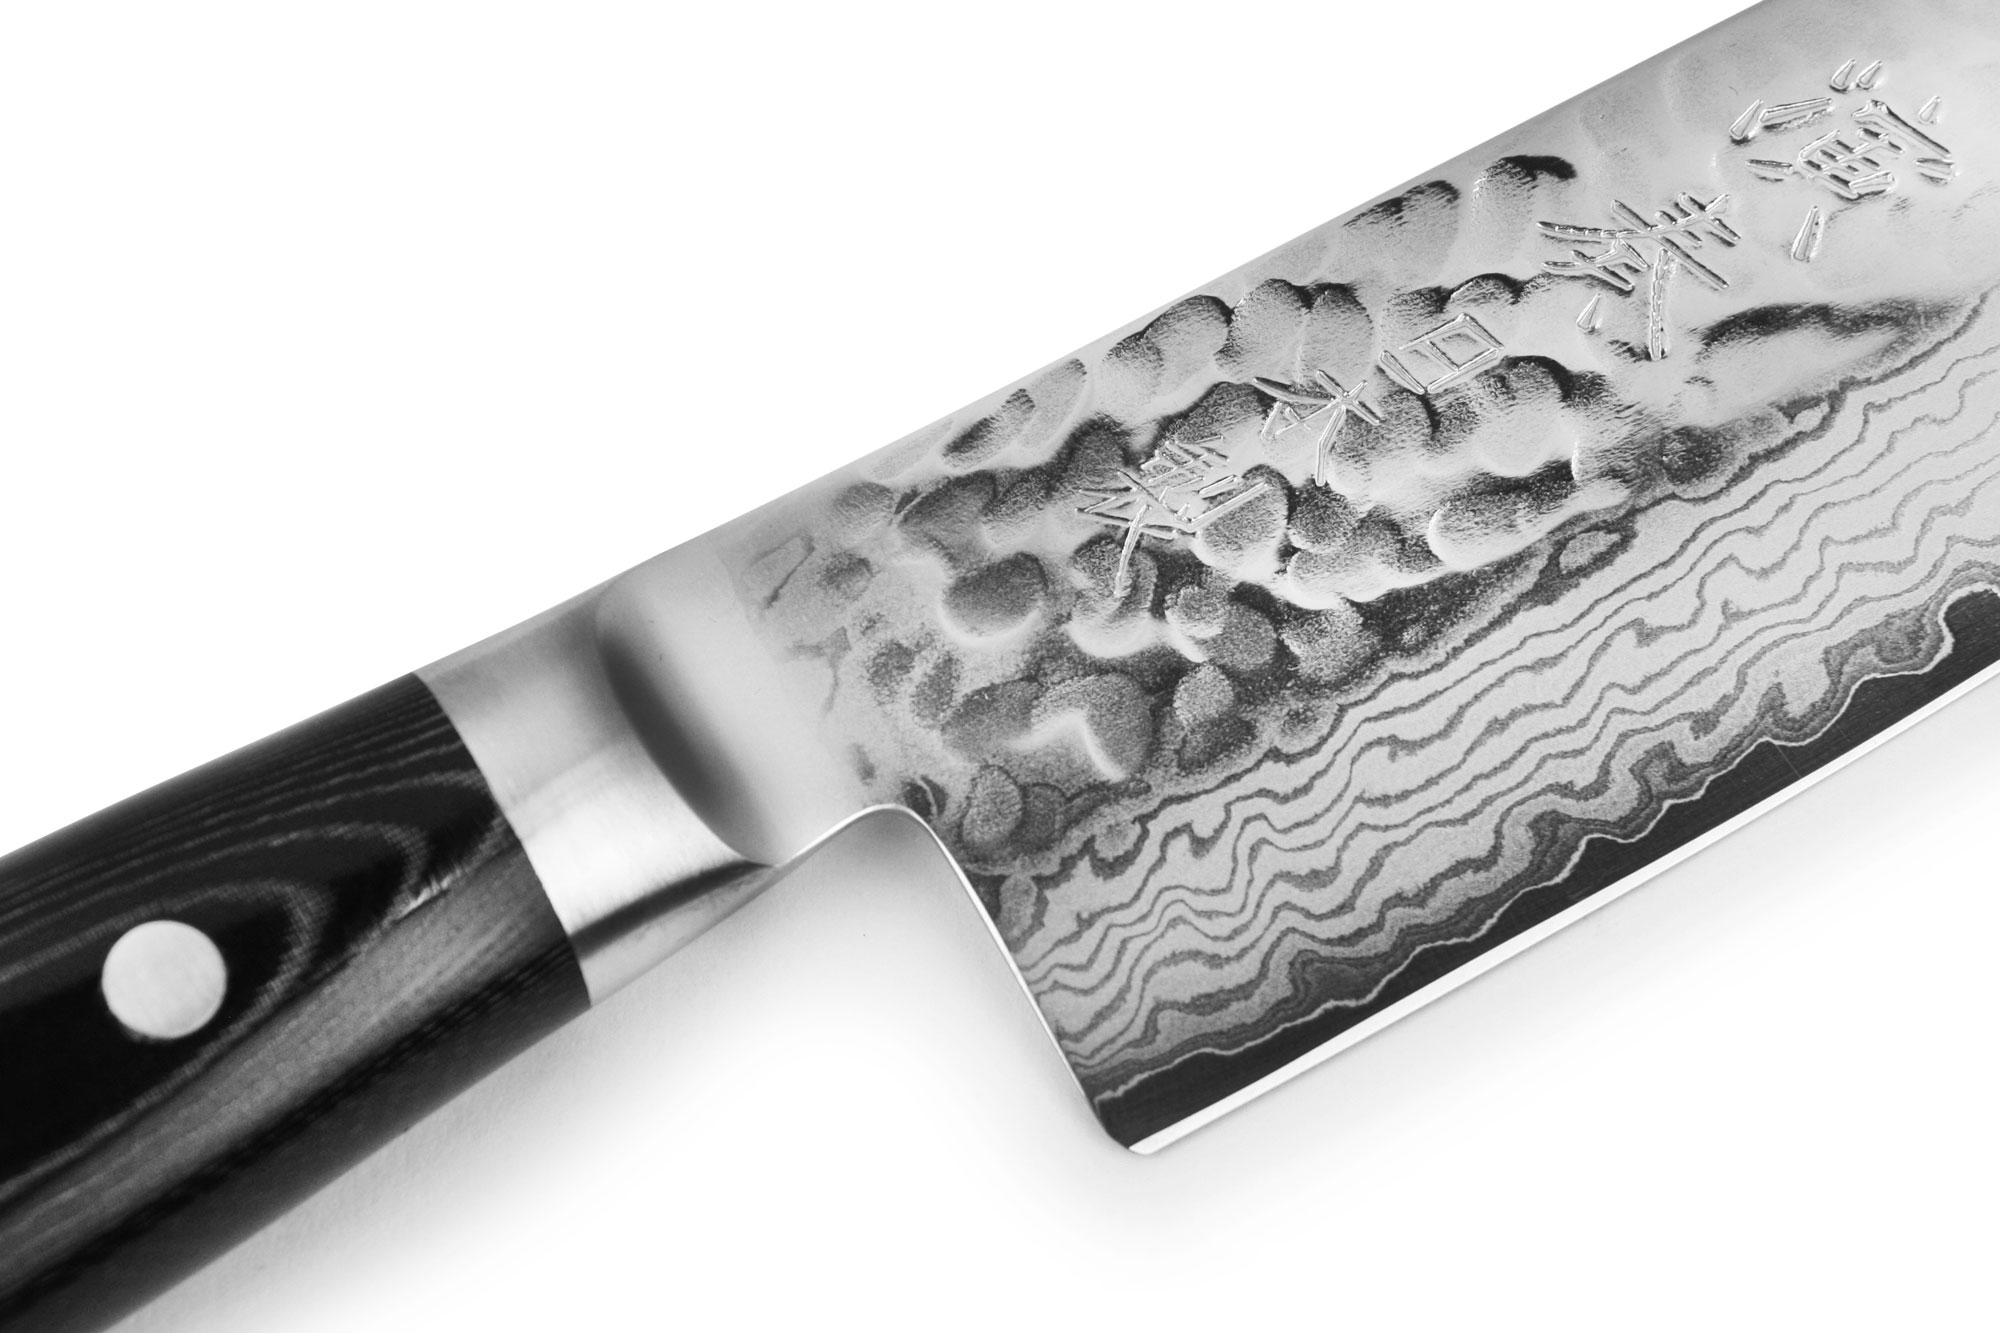 Enso HD Hammered Damascus Chefs Knife 10inch Japanese Kitchen Knives  Cutlery and More